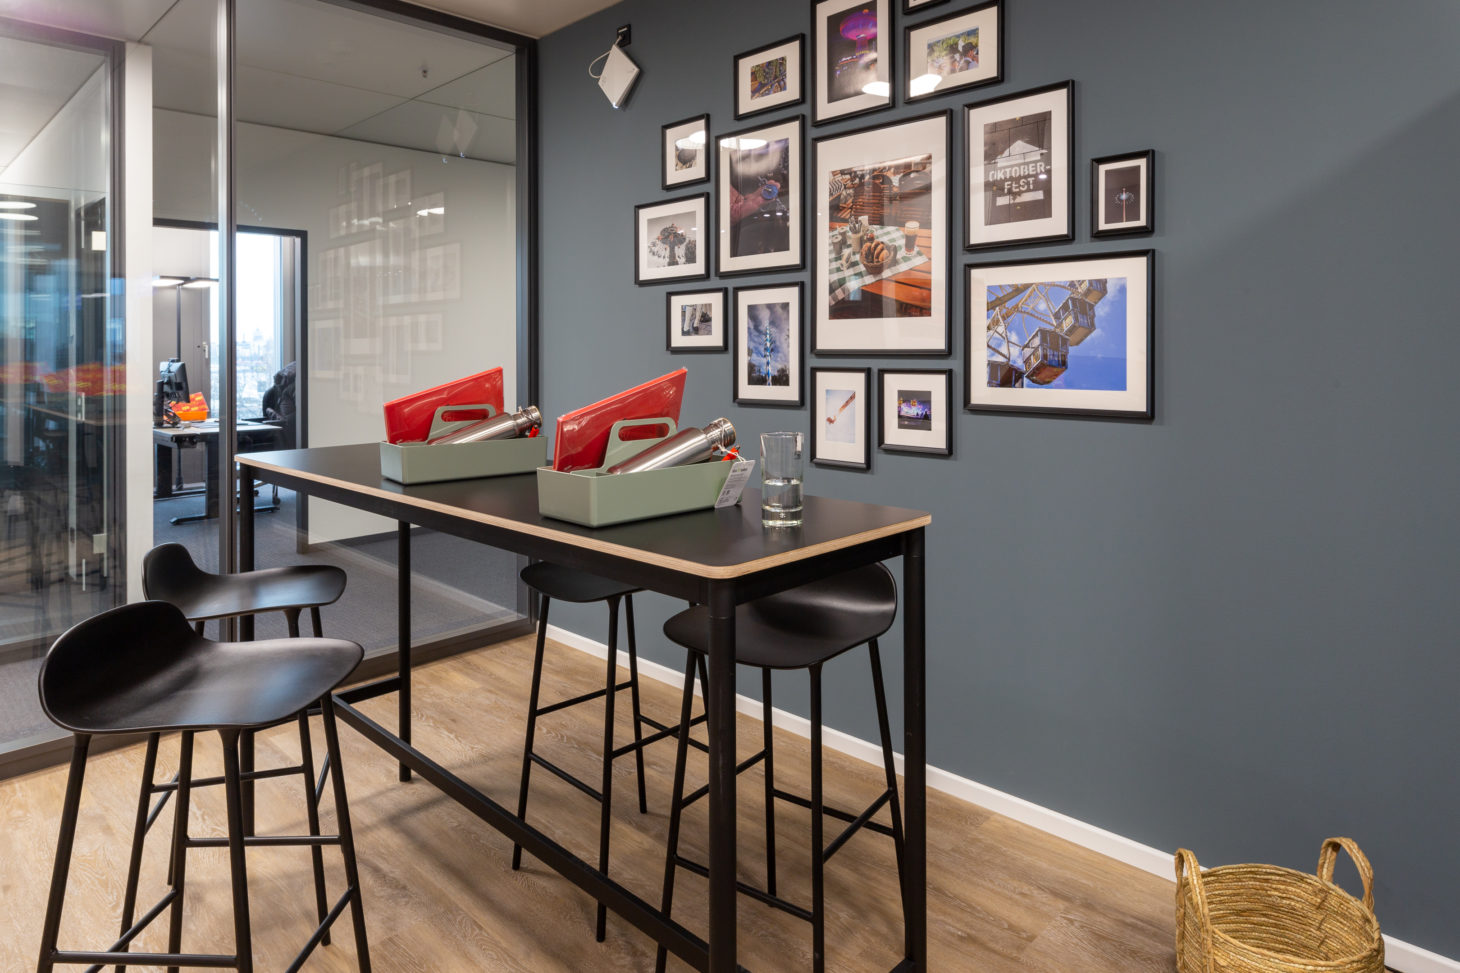 Picture of a kitchen with bar stool and picture wall, valantic branch Supply Chain Excellence Munich